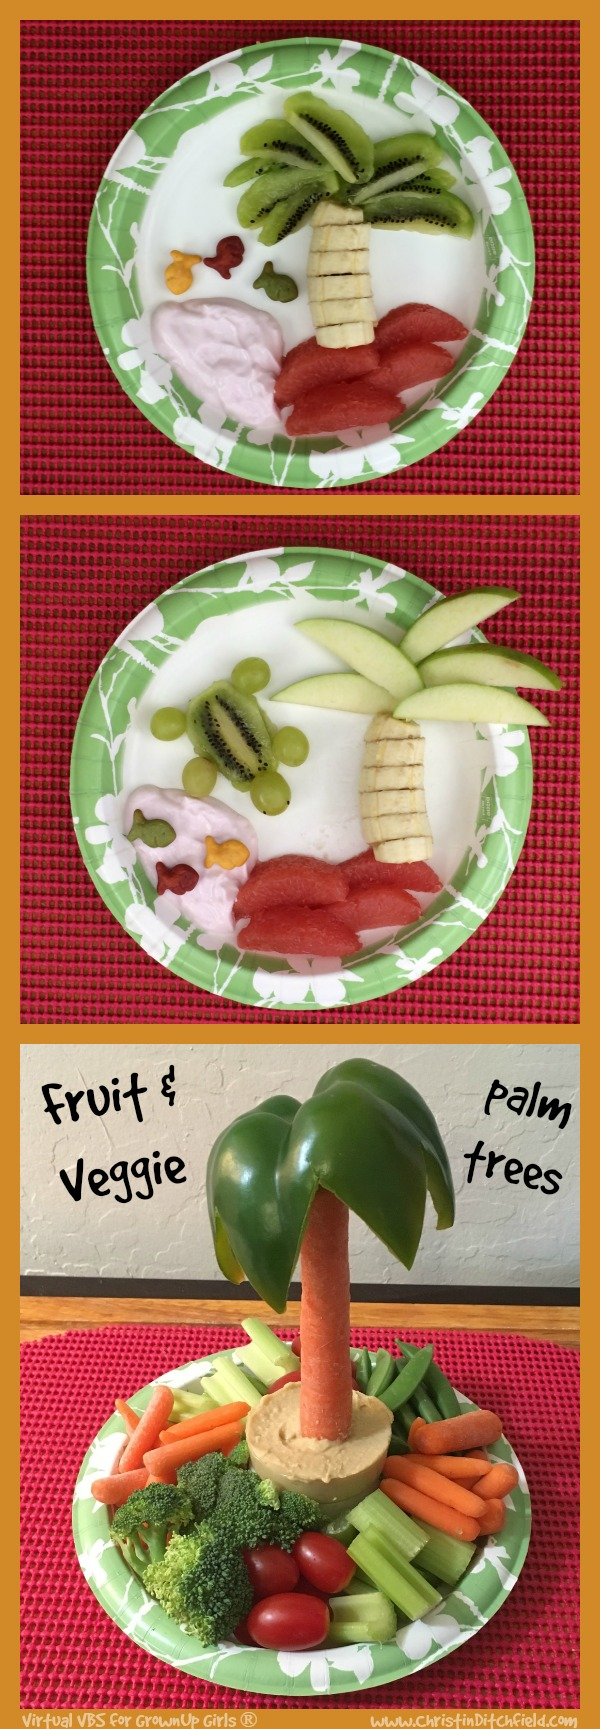 VBS Fruit and Veggie Palm Trees